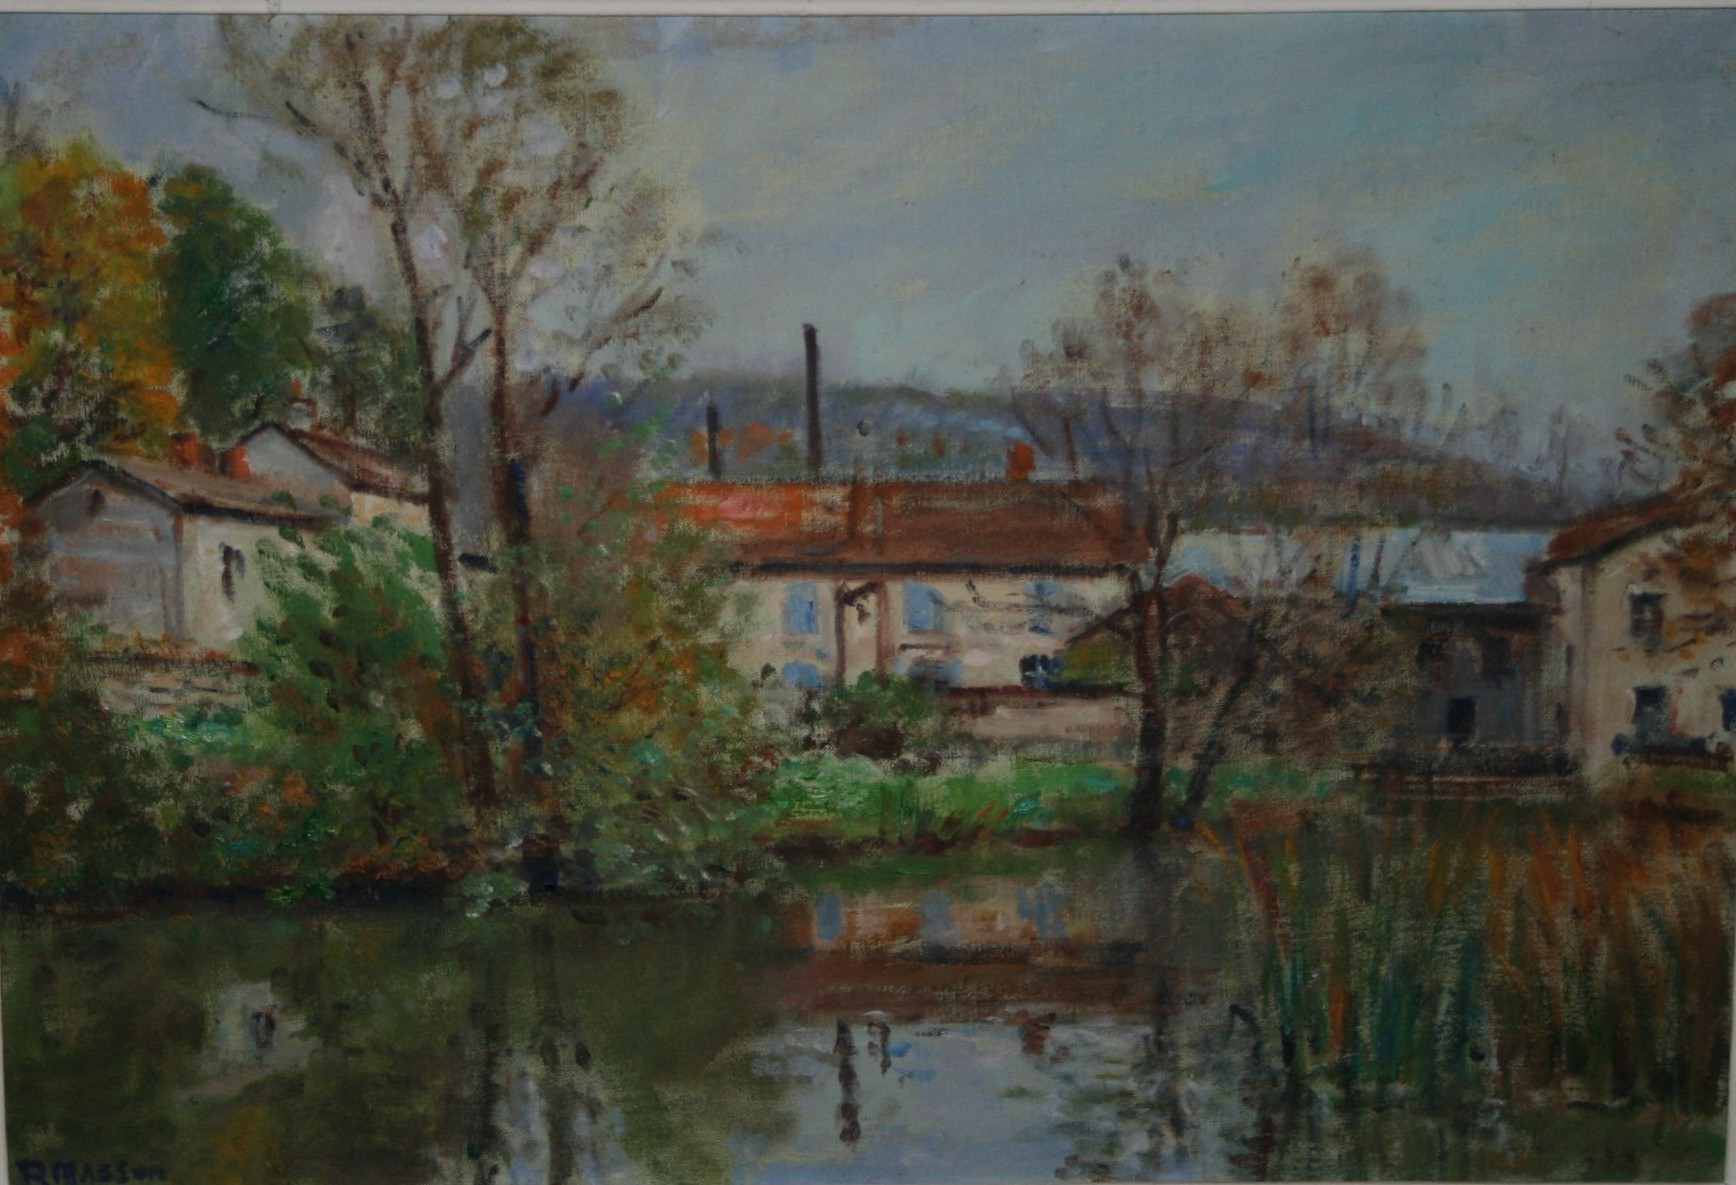 moulin-a-soncourt-roger-masson